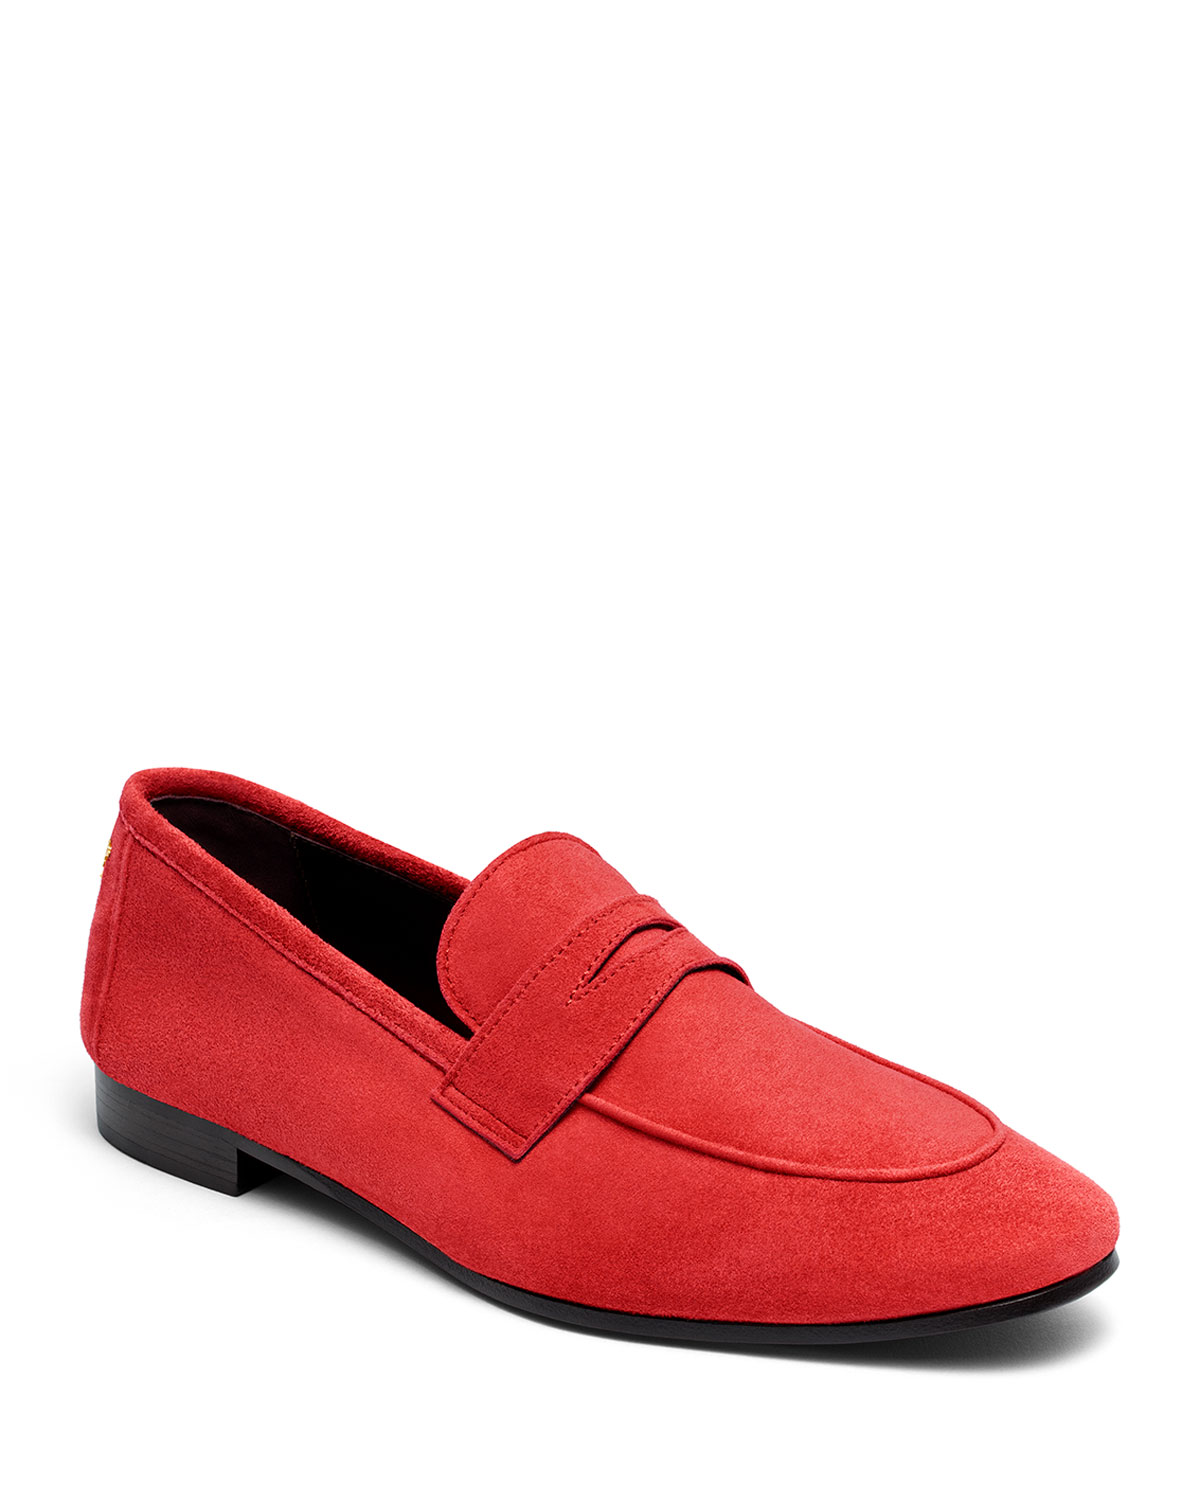 Flaneur Suede Penny Loafers